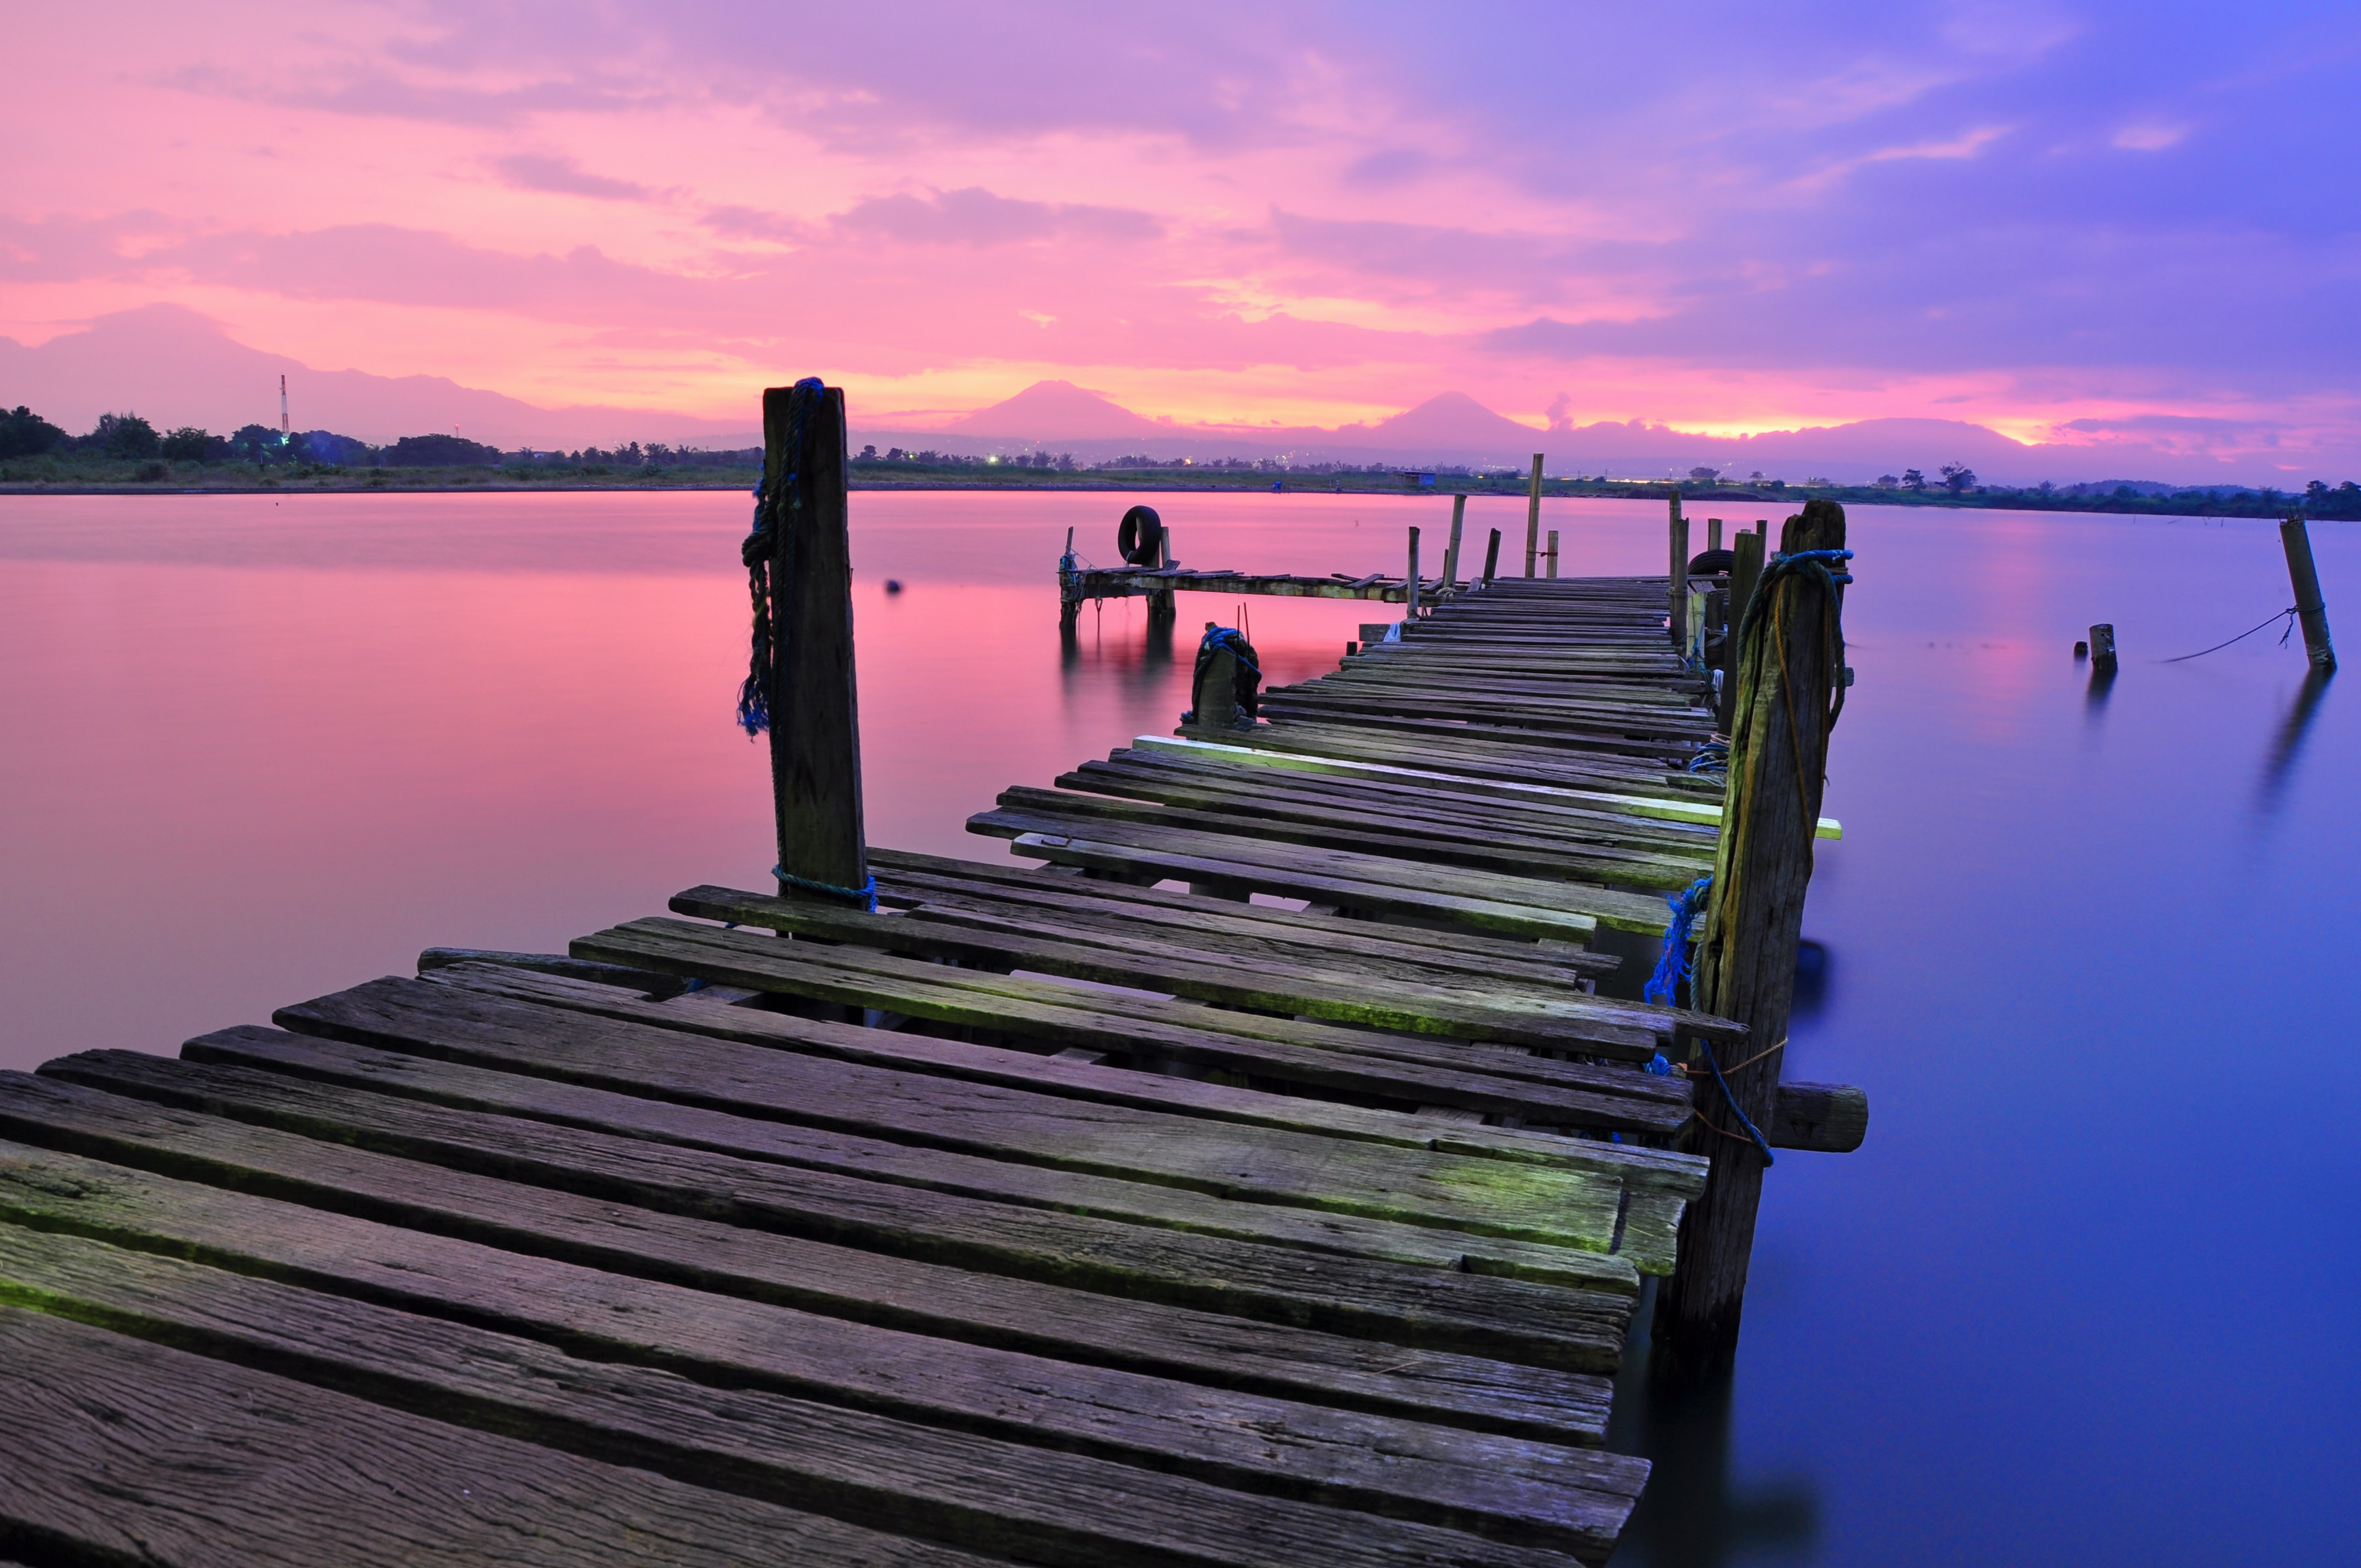 An old dock that is falling apart over the water that is reflecting the pink and purple sky